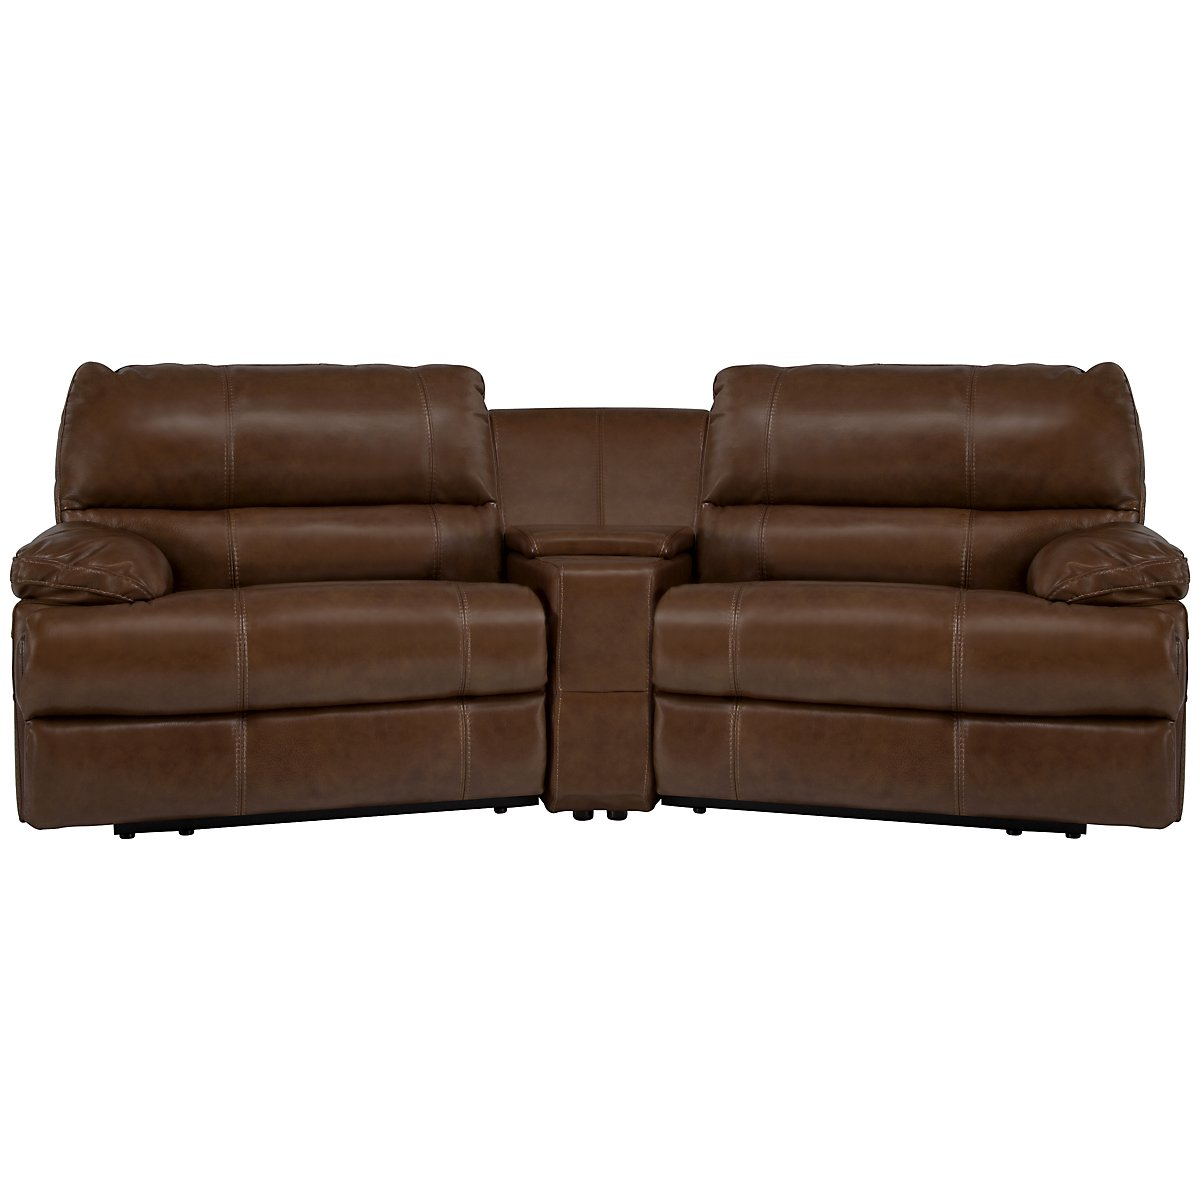 Alton2 Medium Brown Leather & Vinyl Small Power Reclining Home Theater Sectional